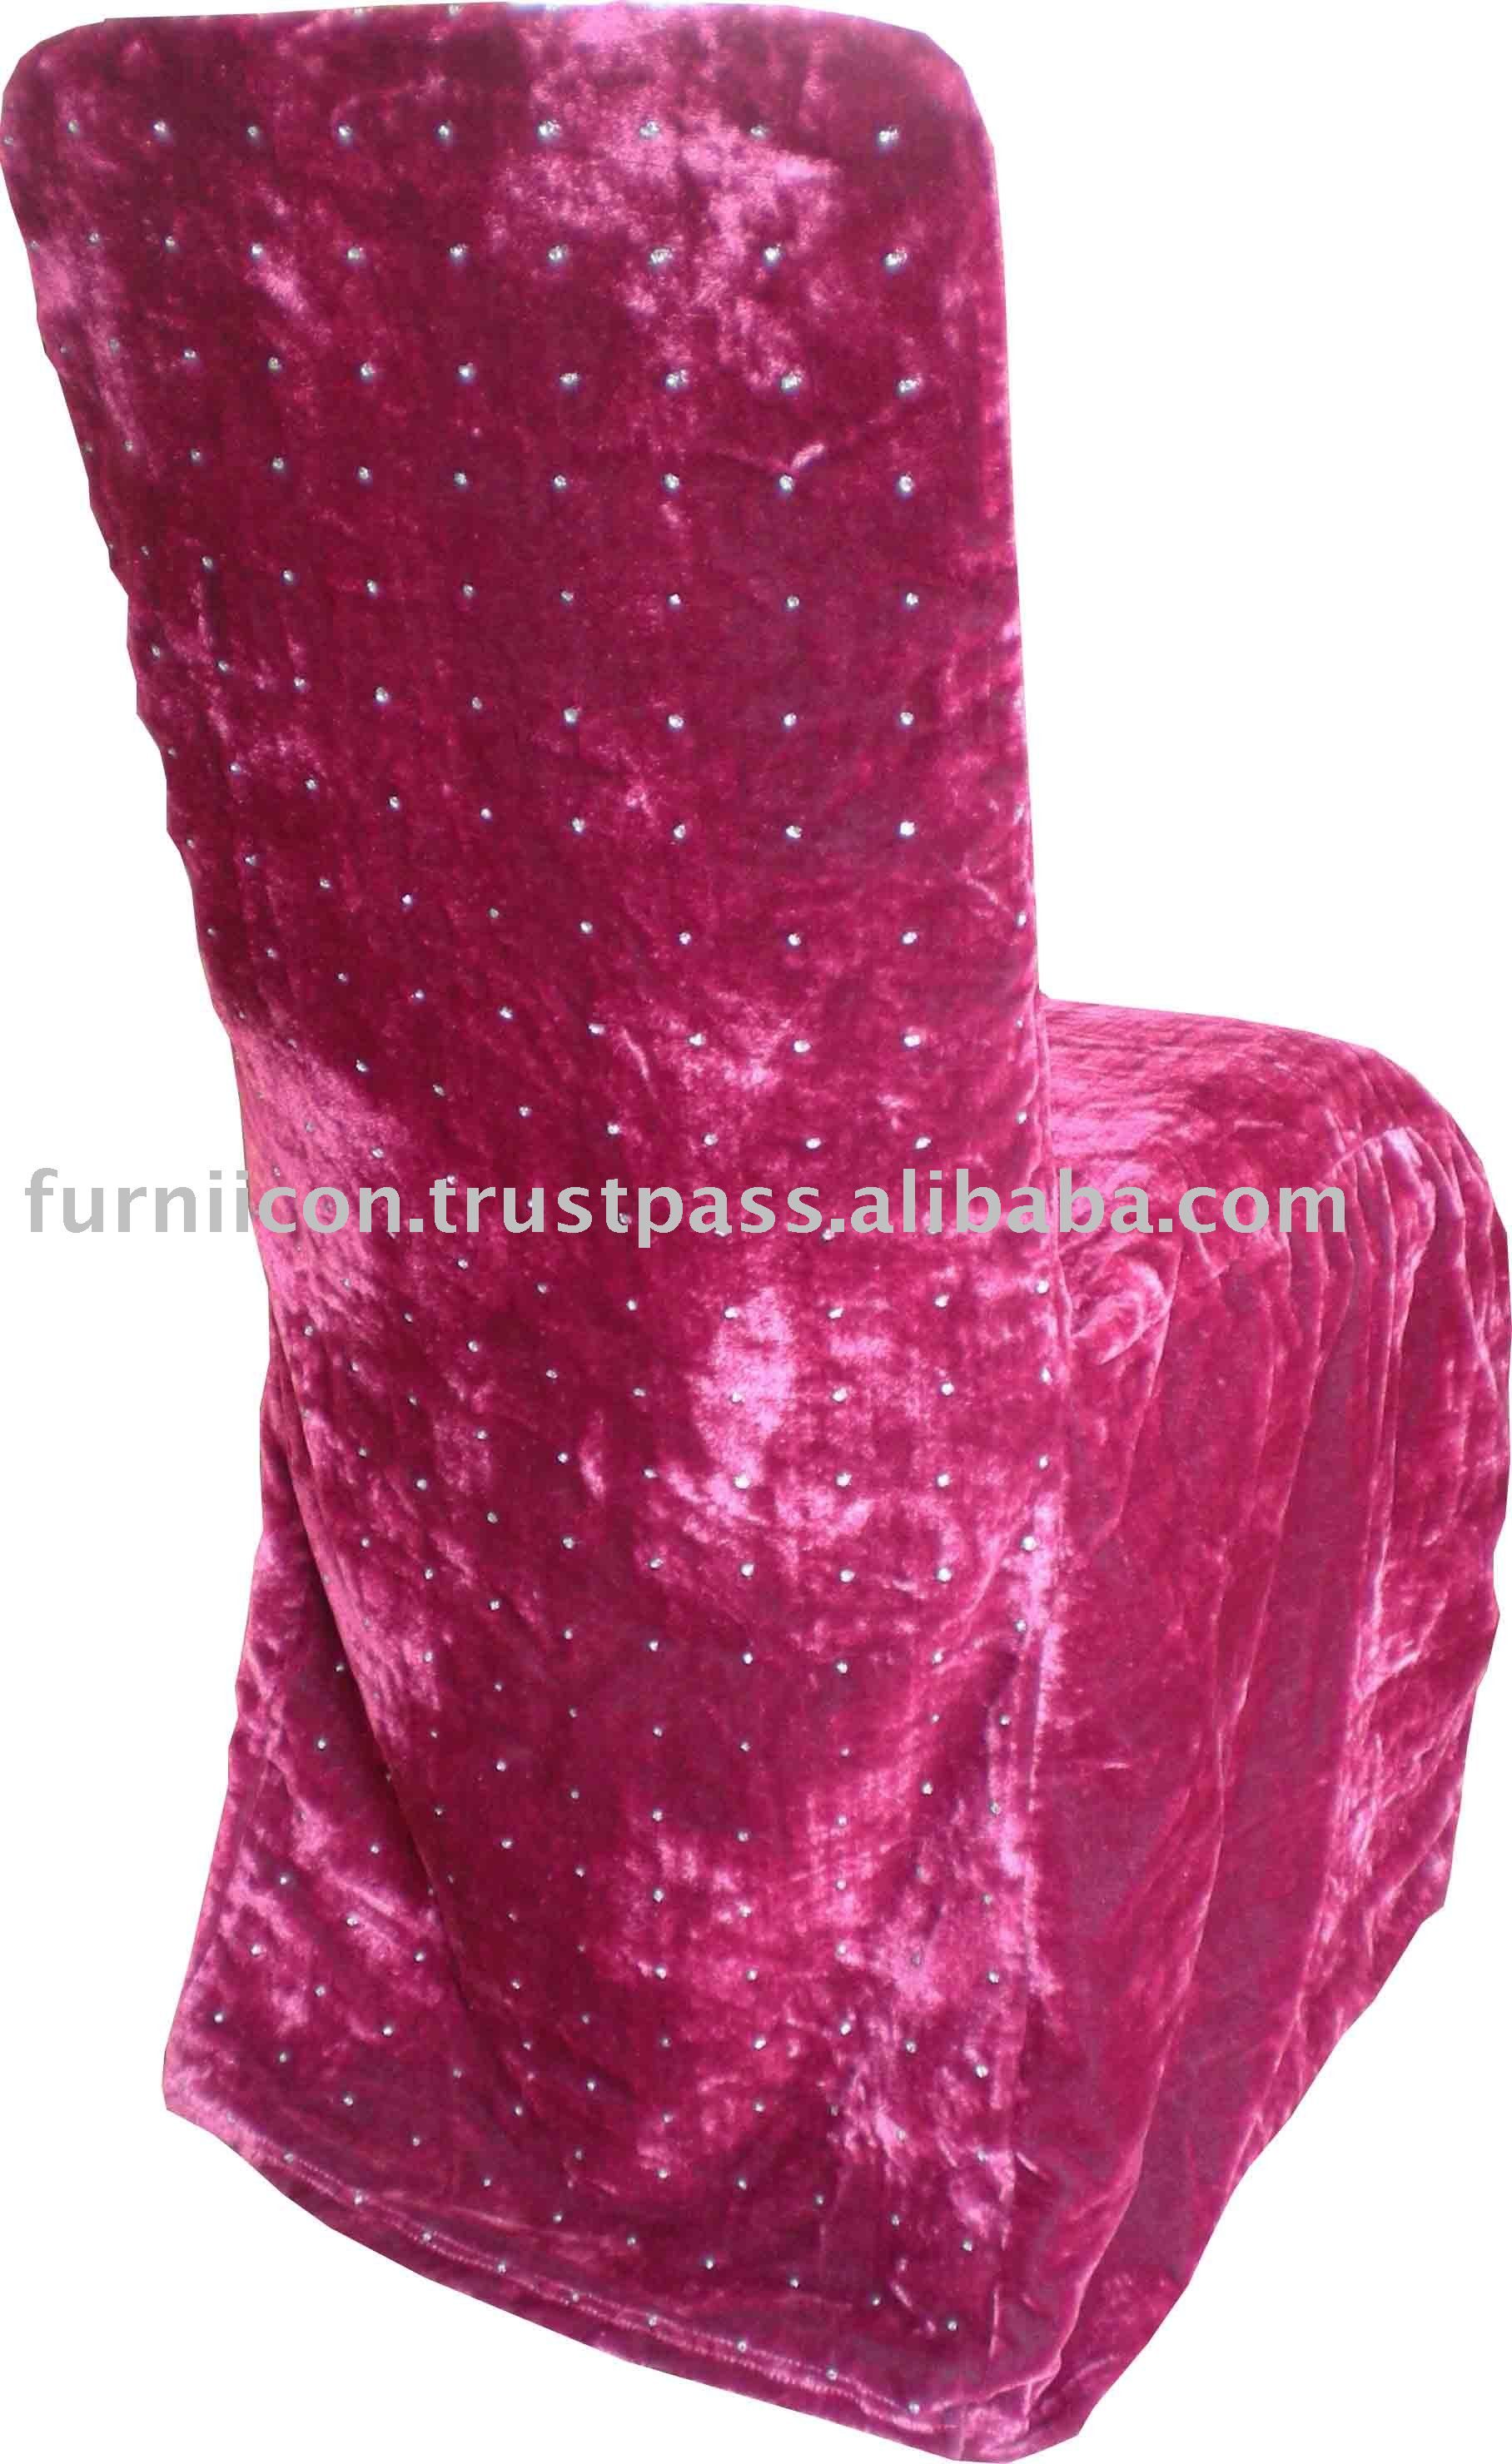 Wedding Chair Covers Wedding Chair Cover Photo Detailed About Velvet Wedding Chair Cover Fancy Chair Chair Covers Wedding Chair Covers